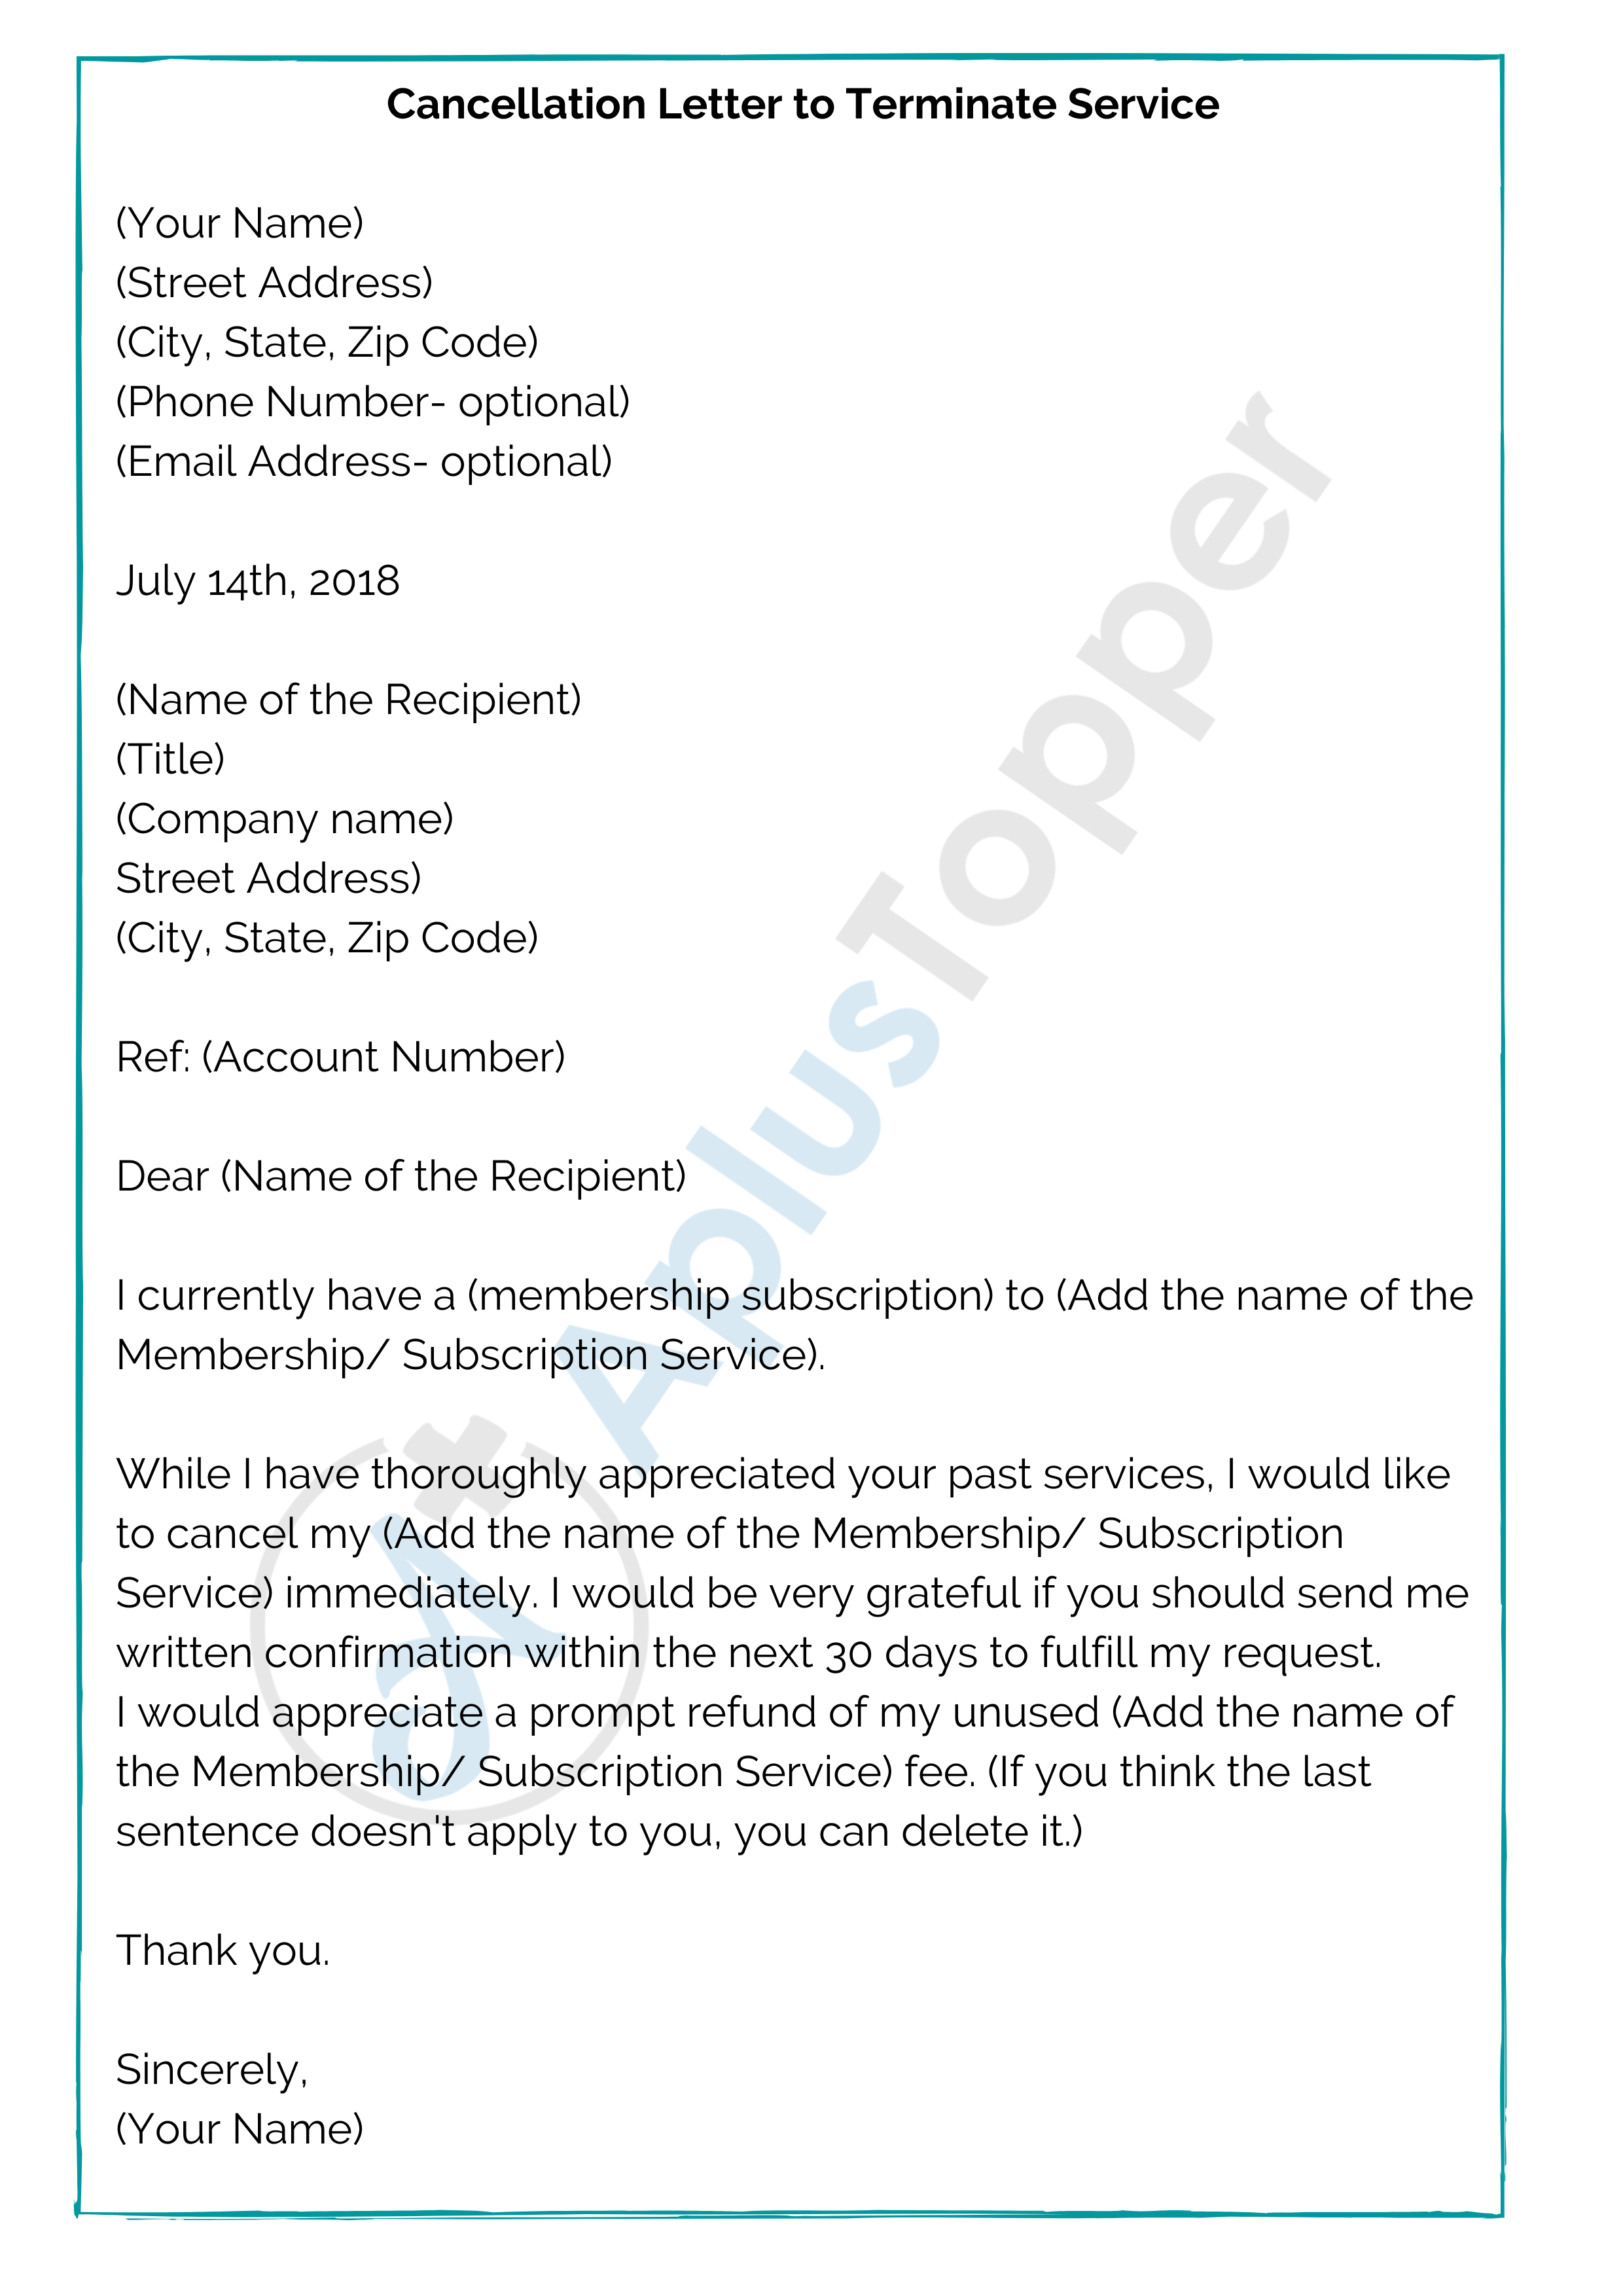 Cancellation Letter to Terminate Service